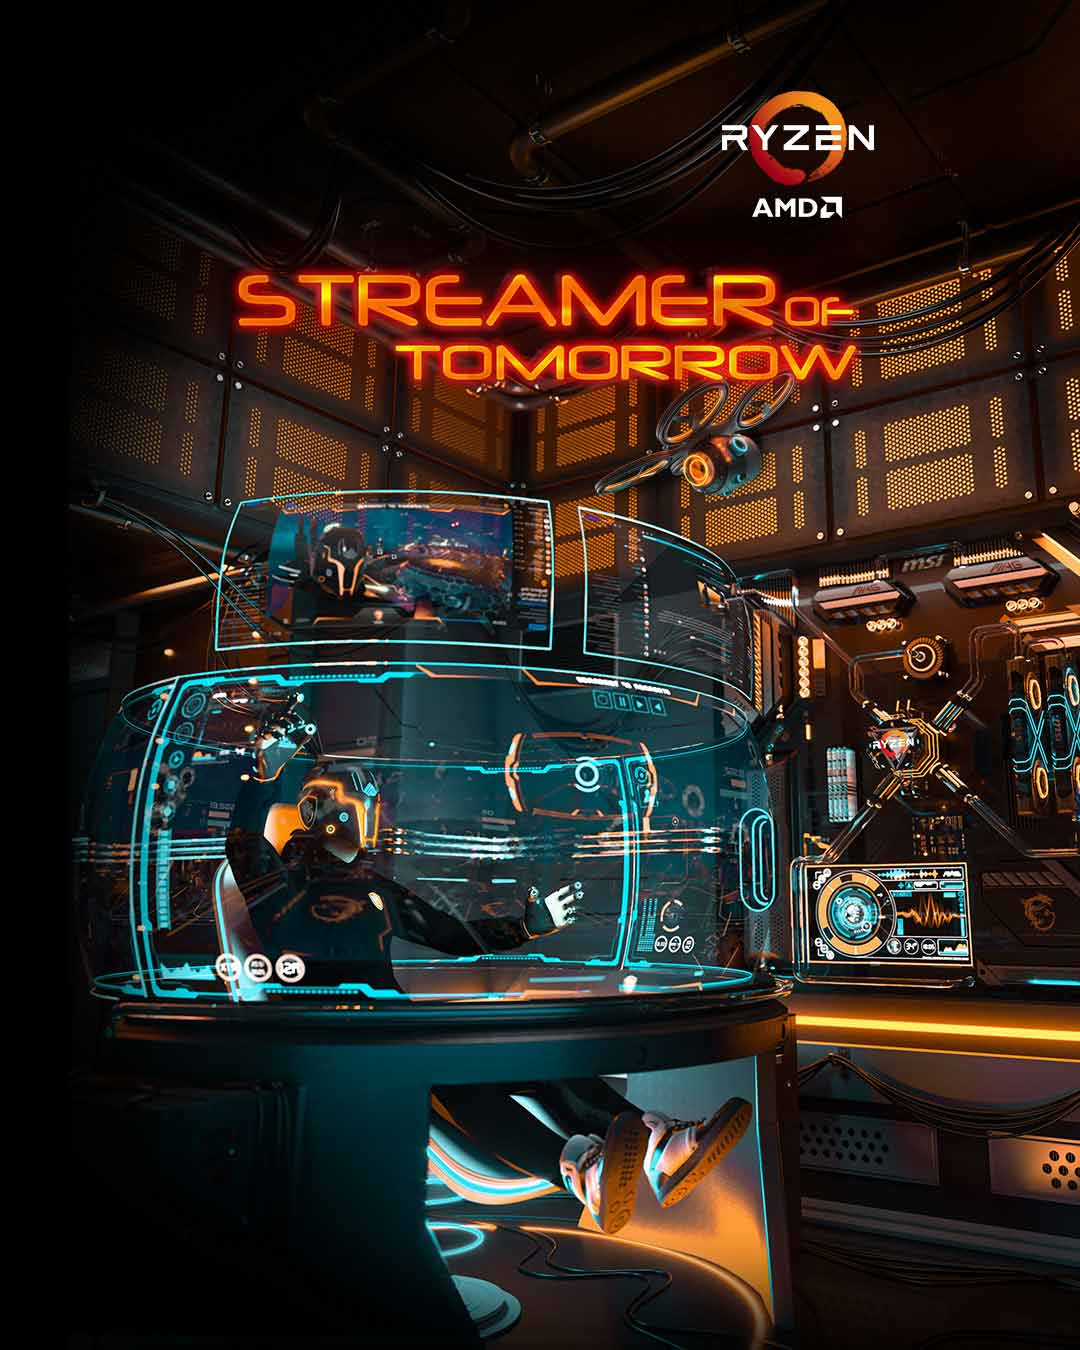 Streamer of Tomorrow